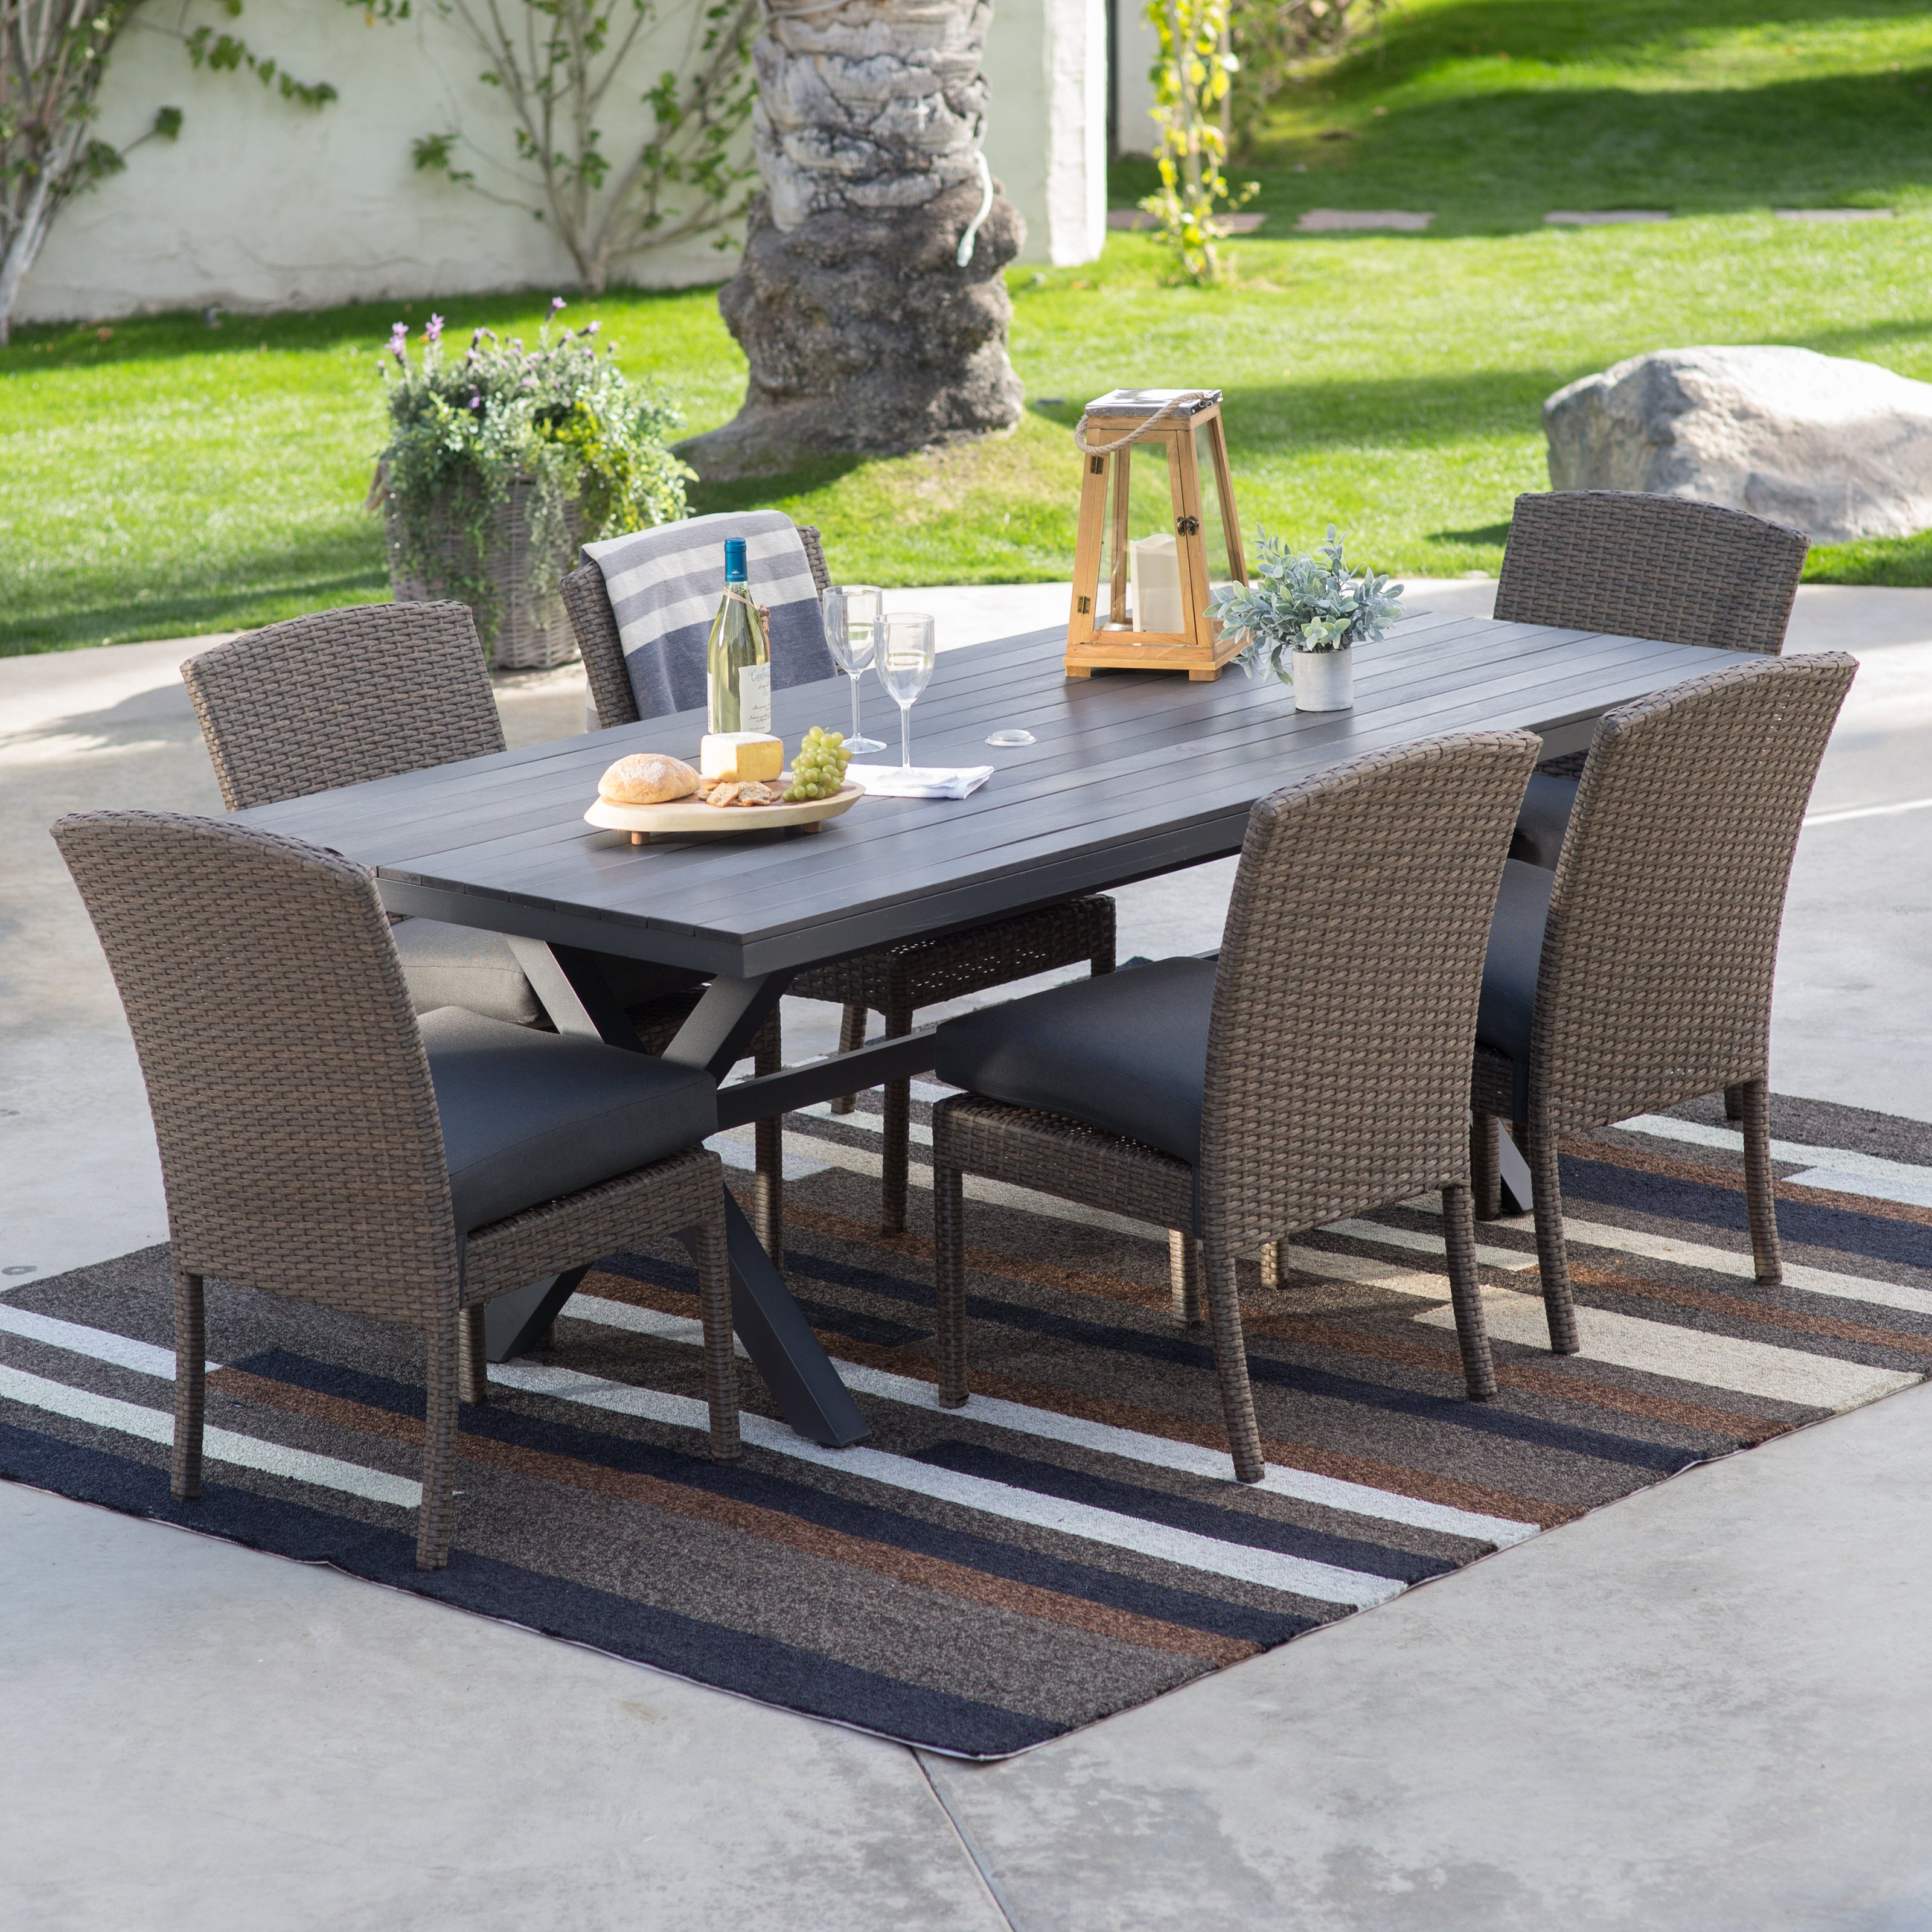 patio furniture sets photo - 2